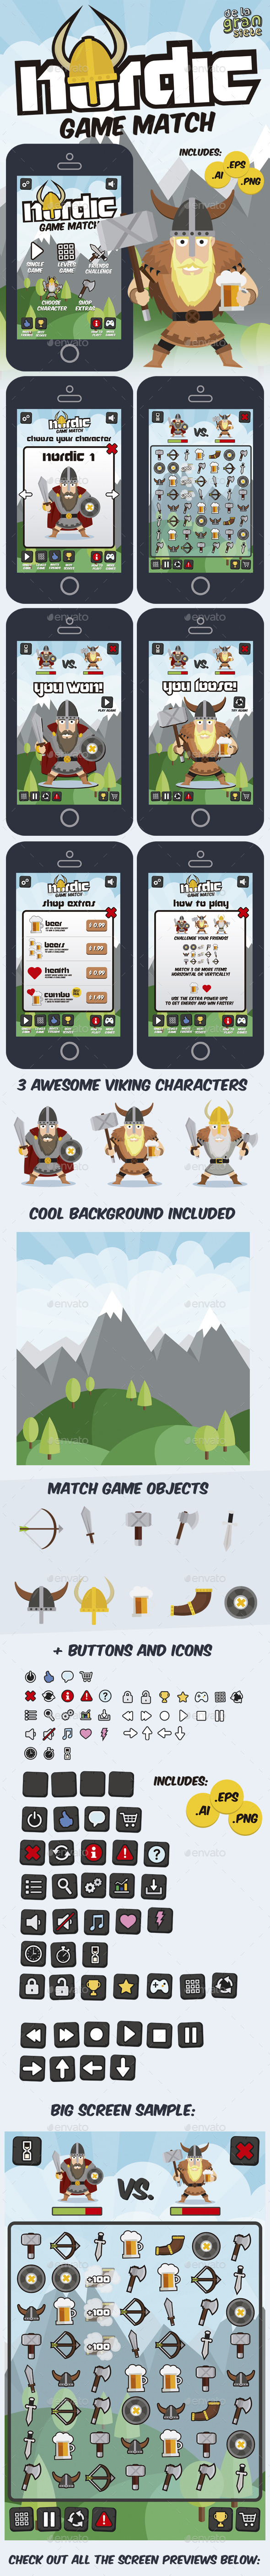 GraphicRiver Nordic Vikings Match 3 Game Style Assets 9742398